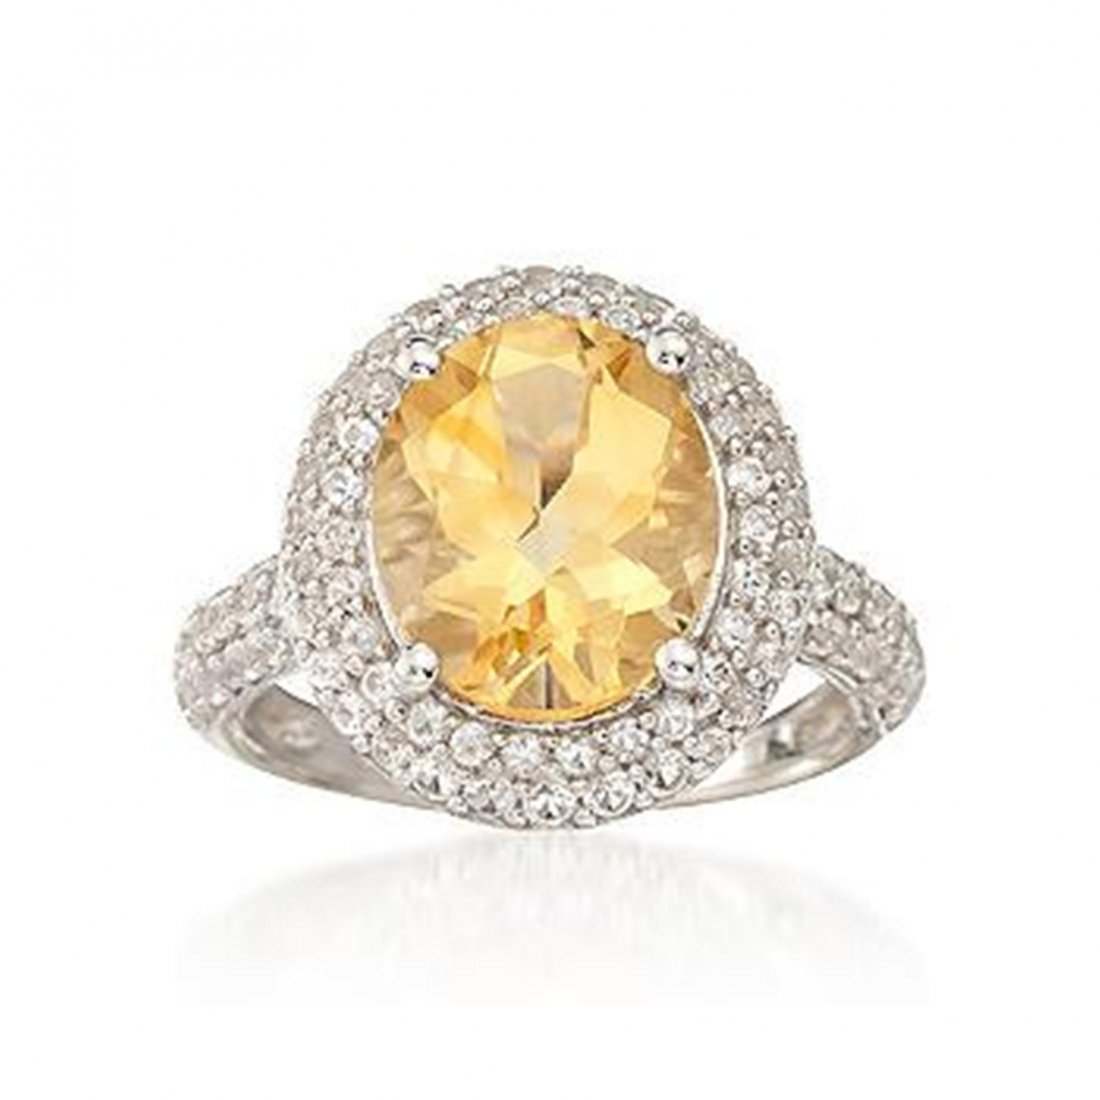 4.30 Carat Citrine Ring With 1.10 ct. t.w. White Sapphi